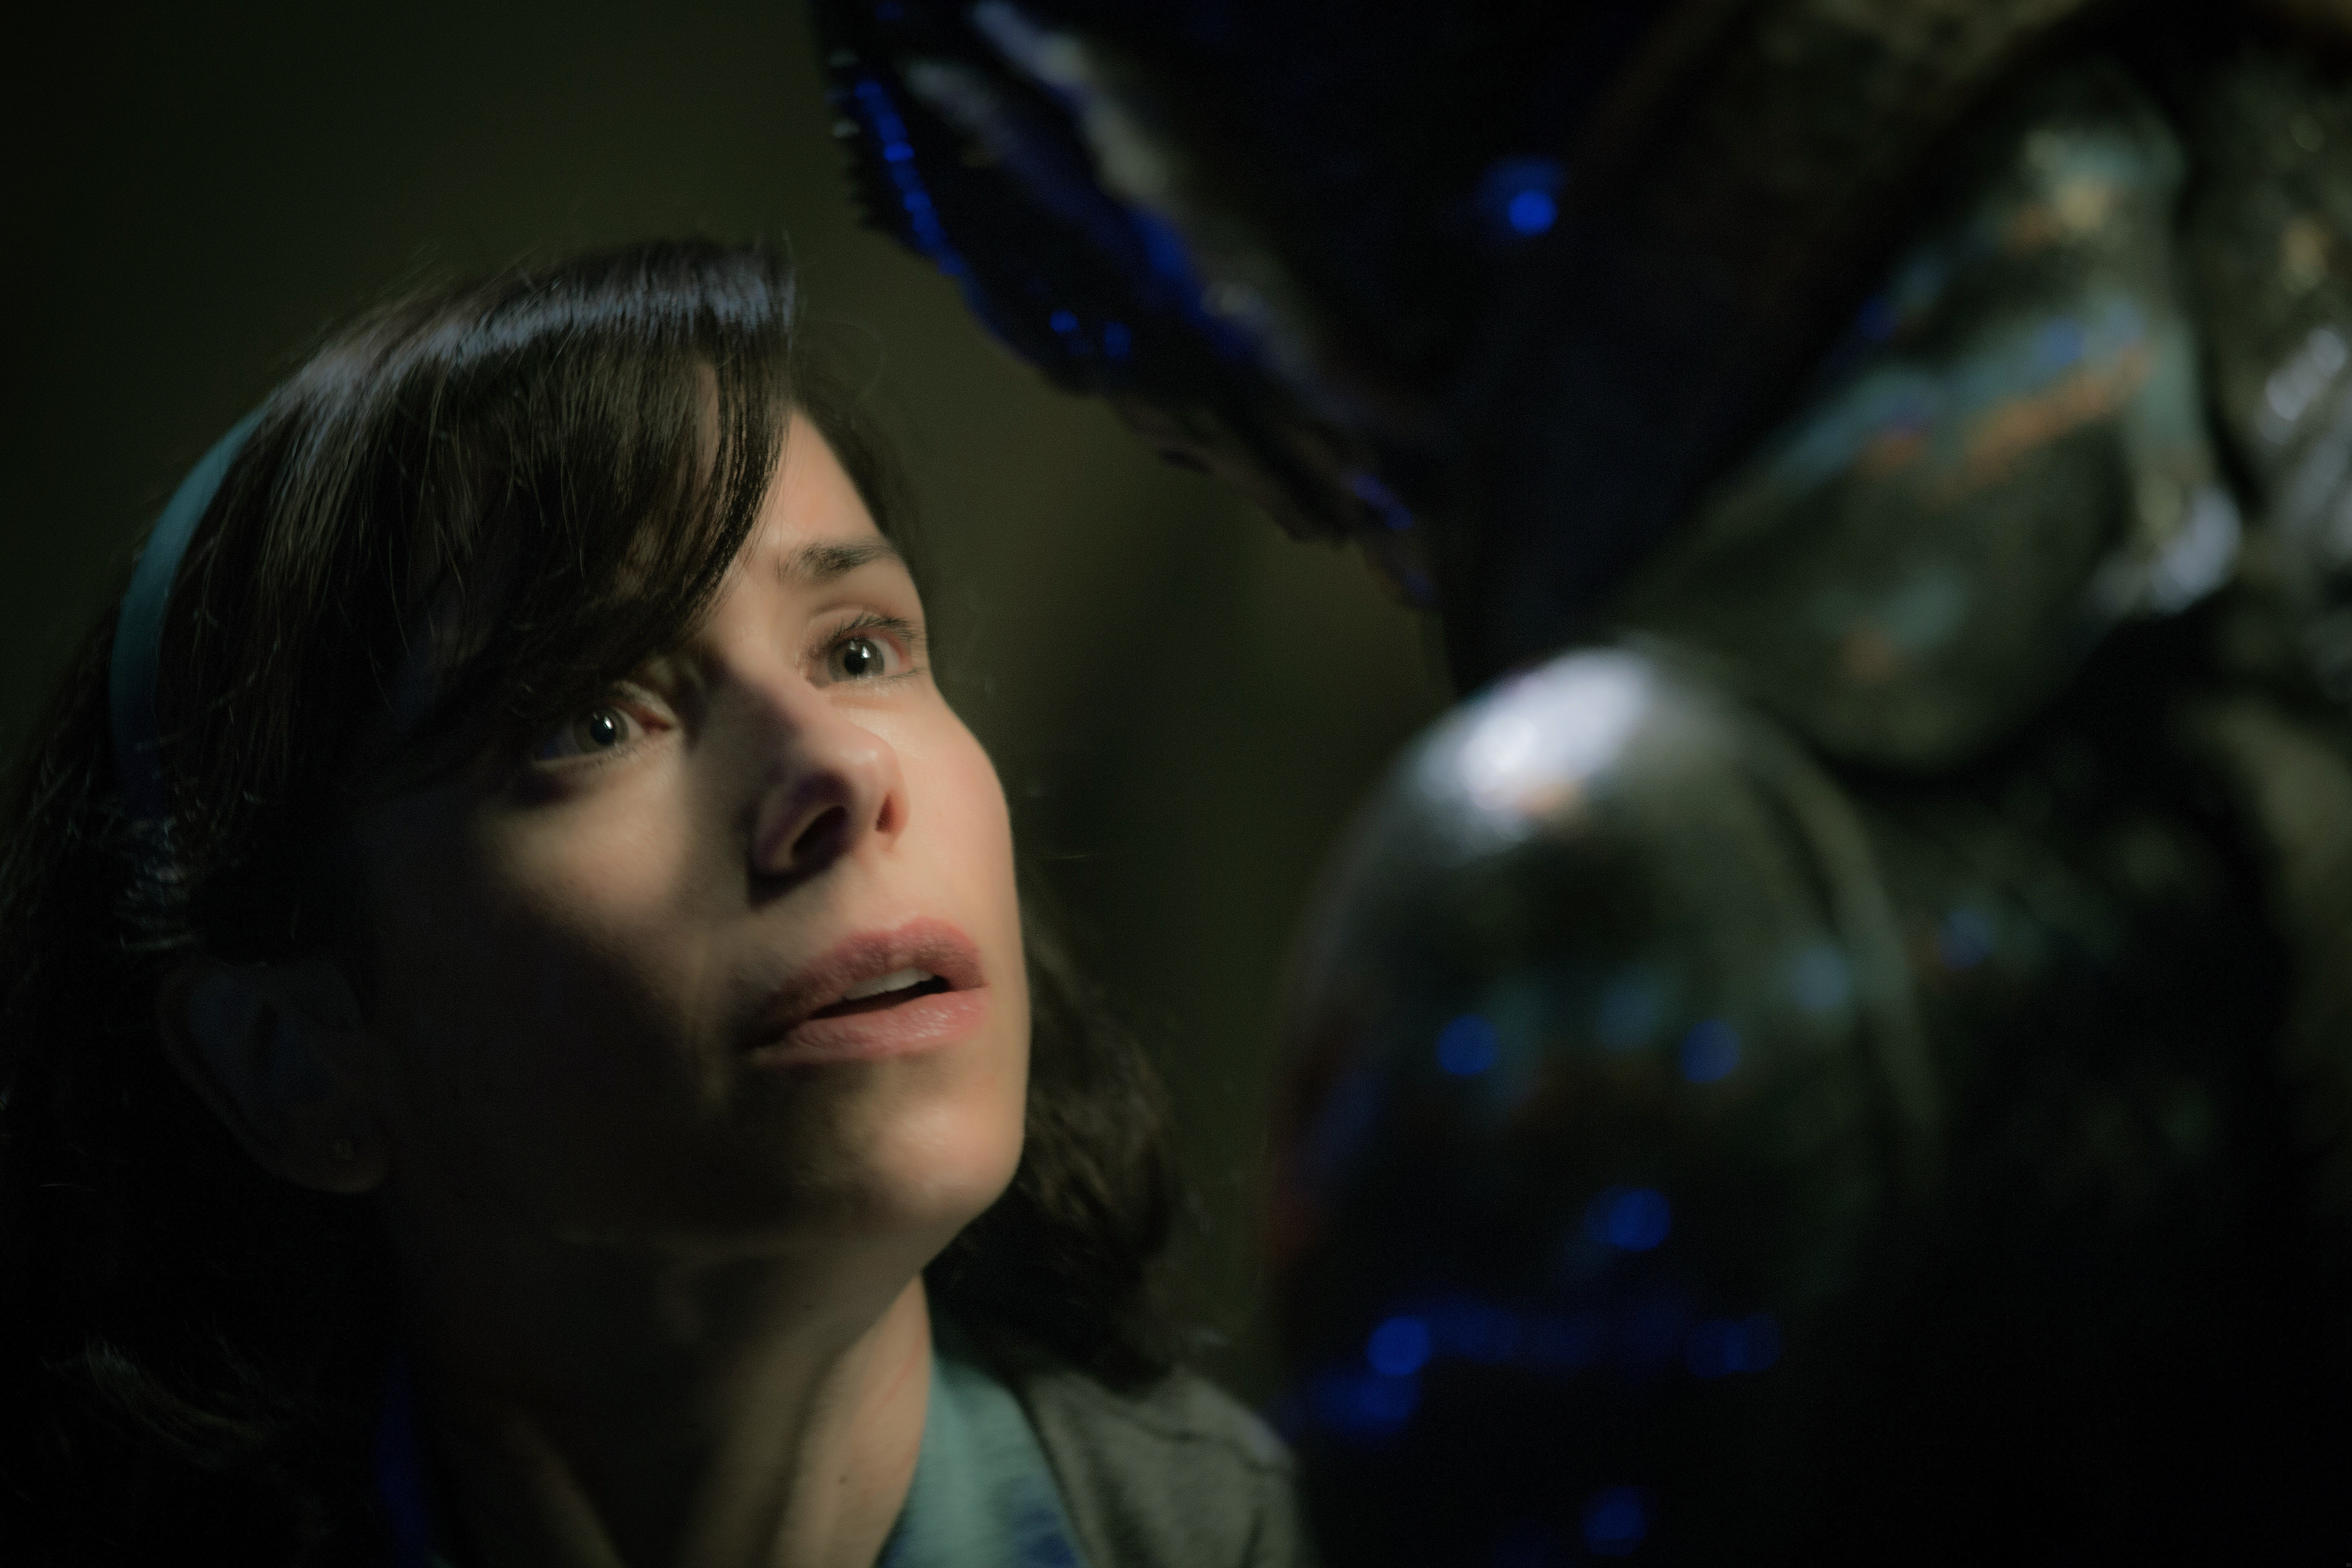 [SPECIALE FESTIVAL DI VENEZIA] THE SHAPE OF WATER – LA RECENSIONE